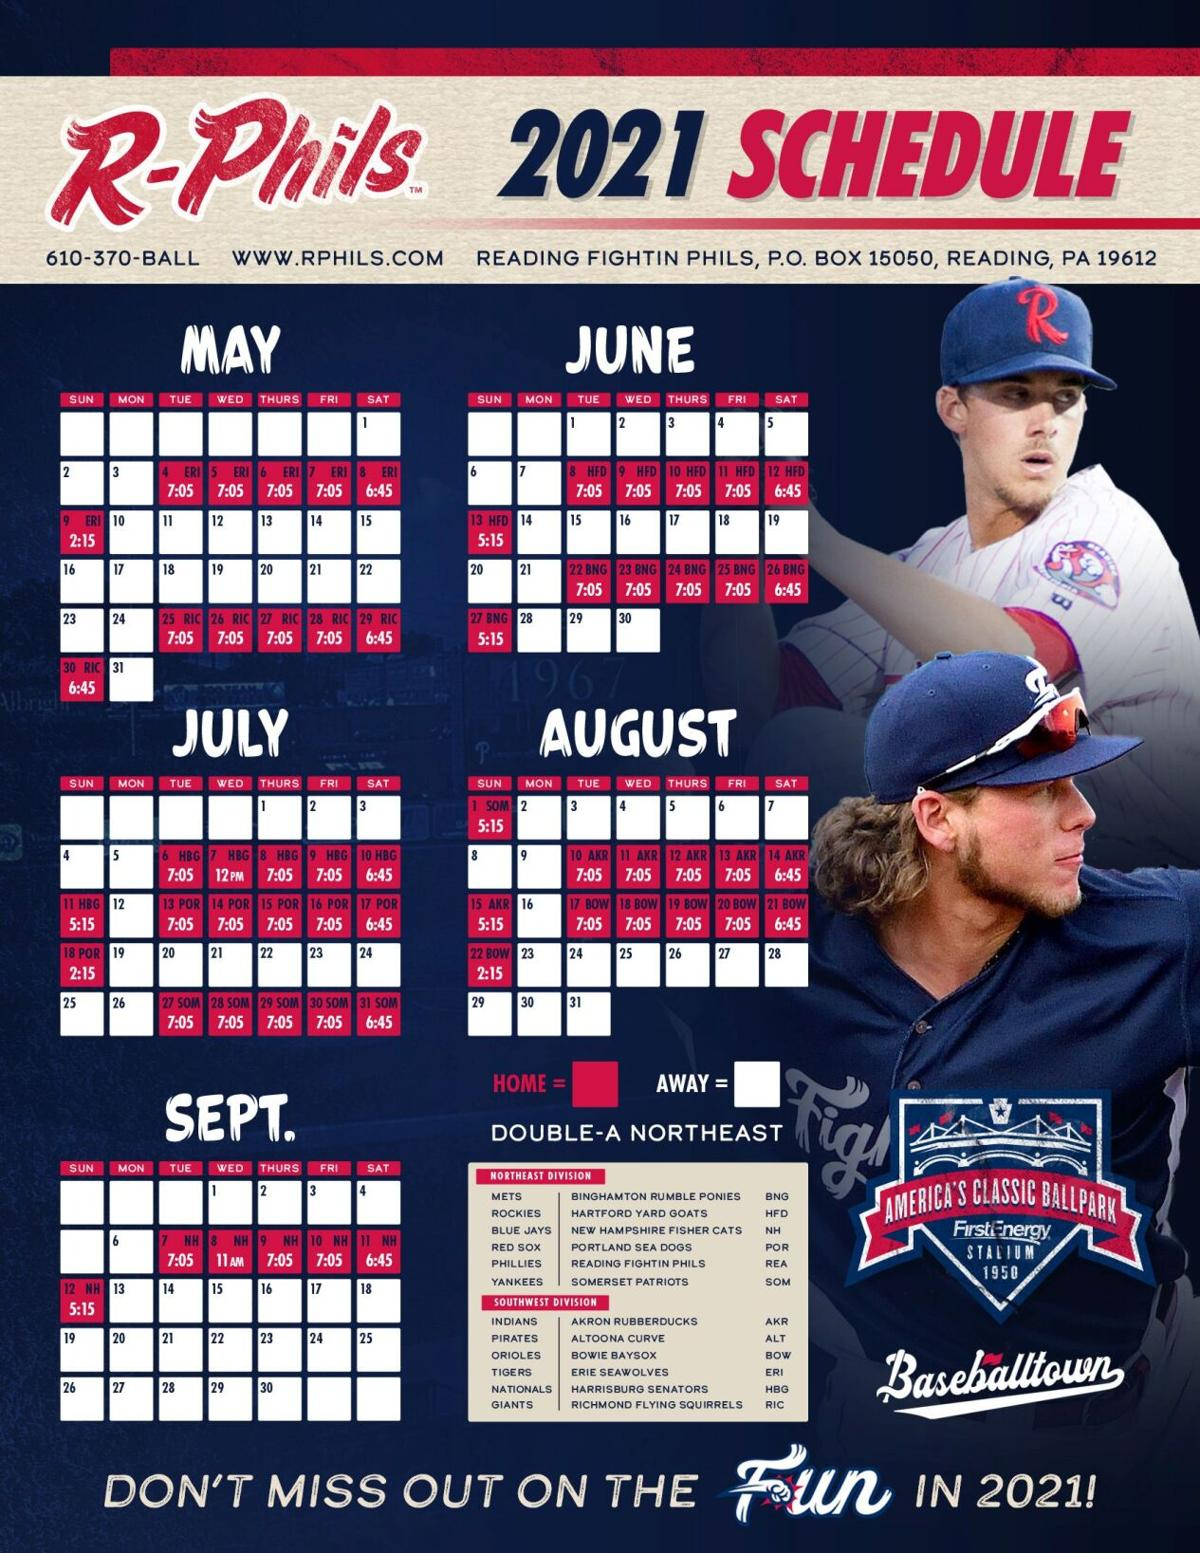 Reading Fightin Phils 2021 schedule with game times